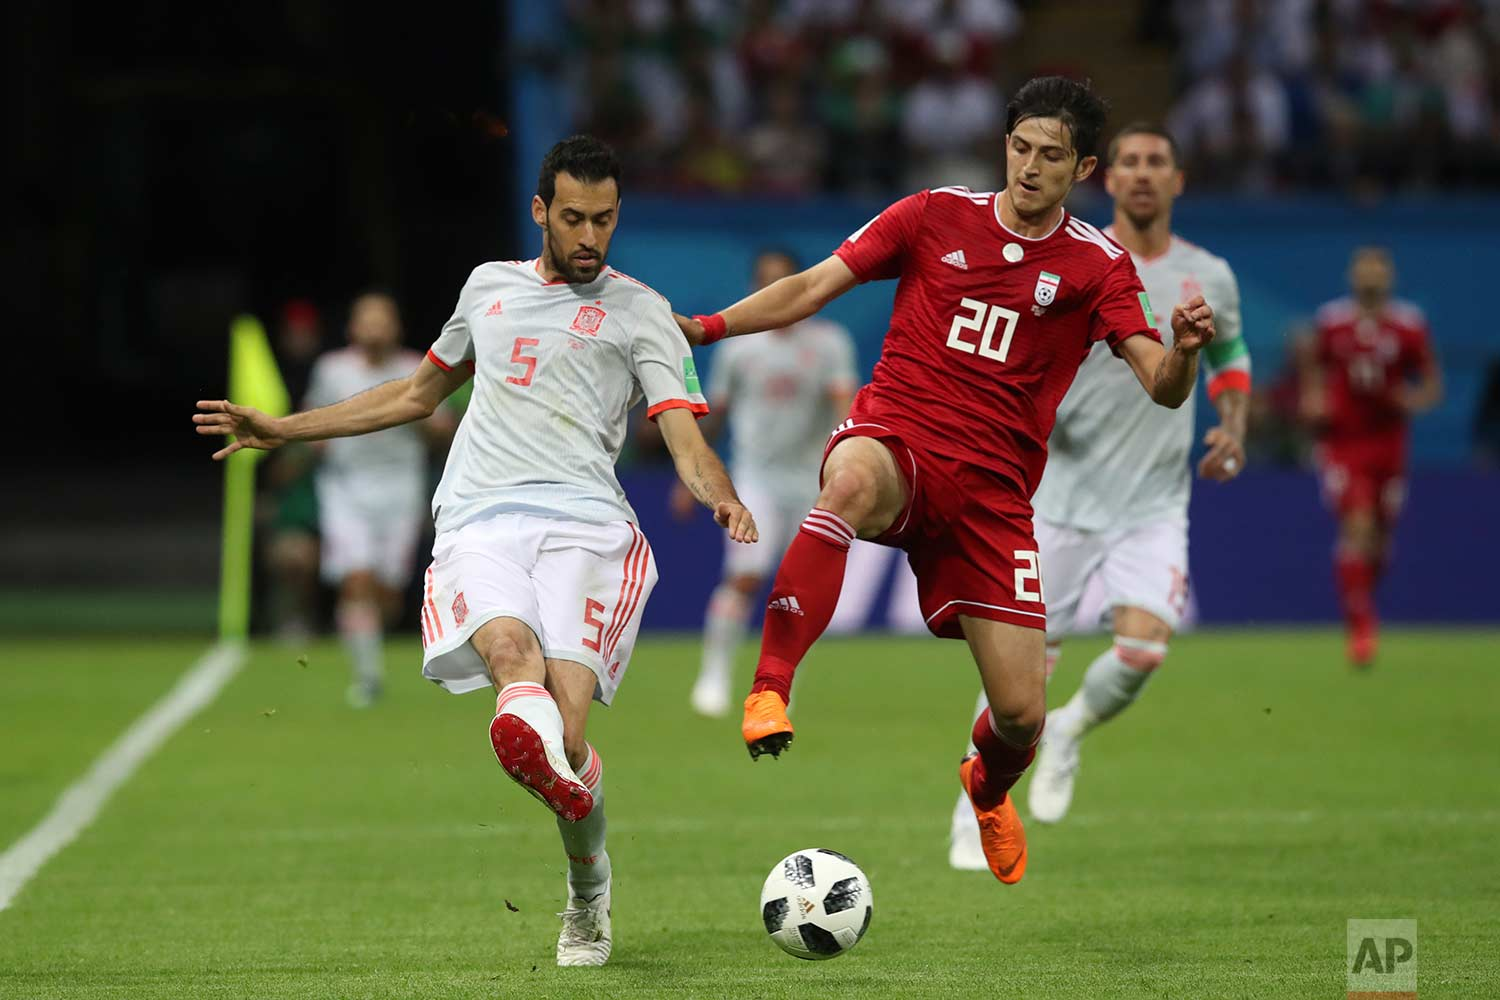 Spain's Sergio Busquets, left, fights for the ball with Iran's Sardar Azmoun during the group B match between Iran and Spain at the 2018 soccer World Cup in the Kazan Arena in Kazan, Russia, Wednesday, June 20, 2018. (AP Photo/Thanassis Stavrakis)